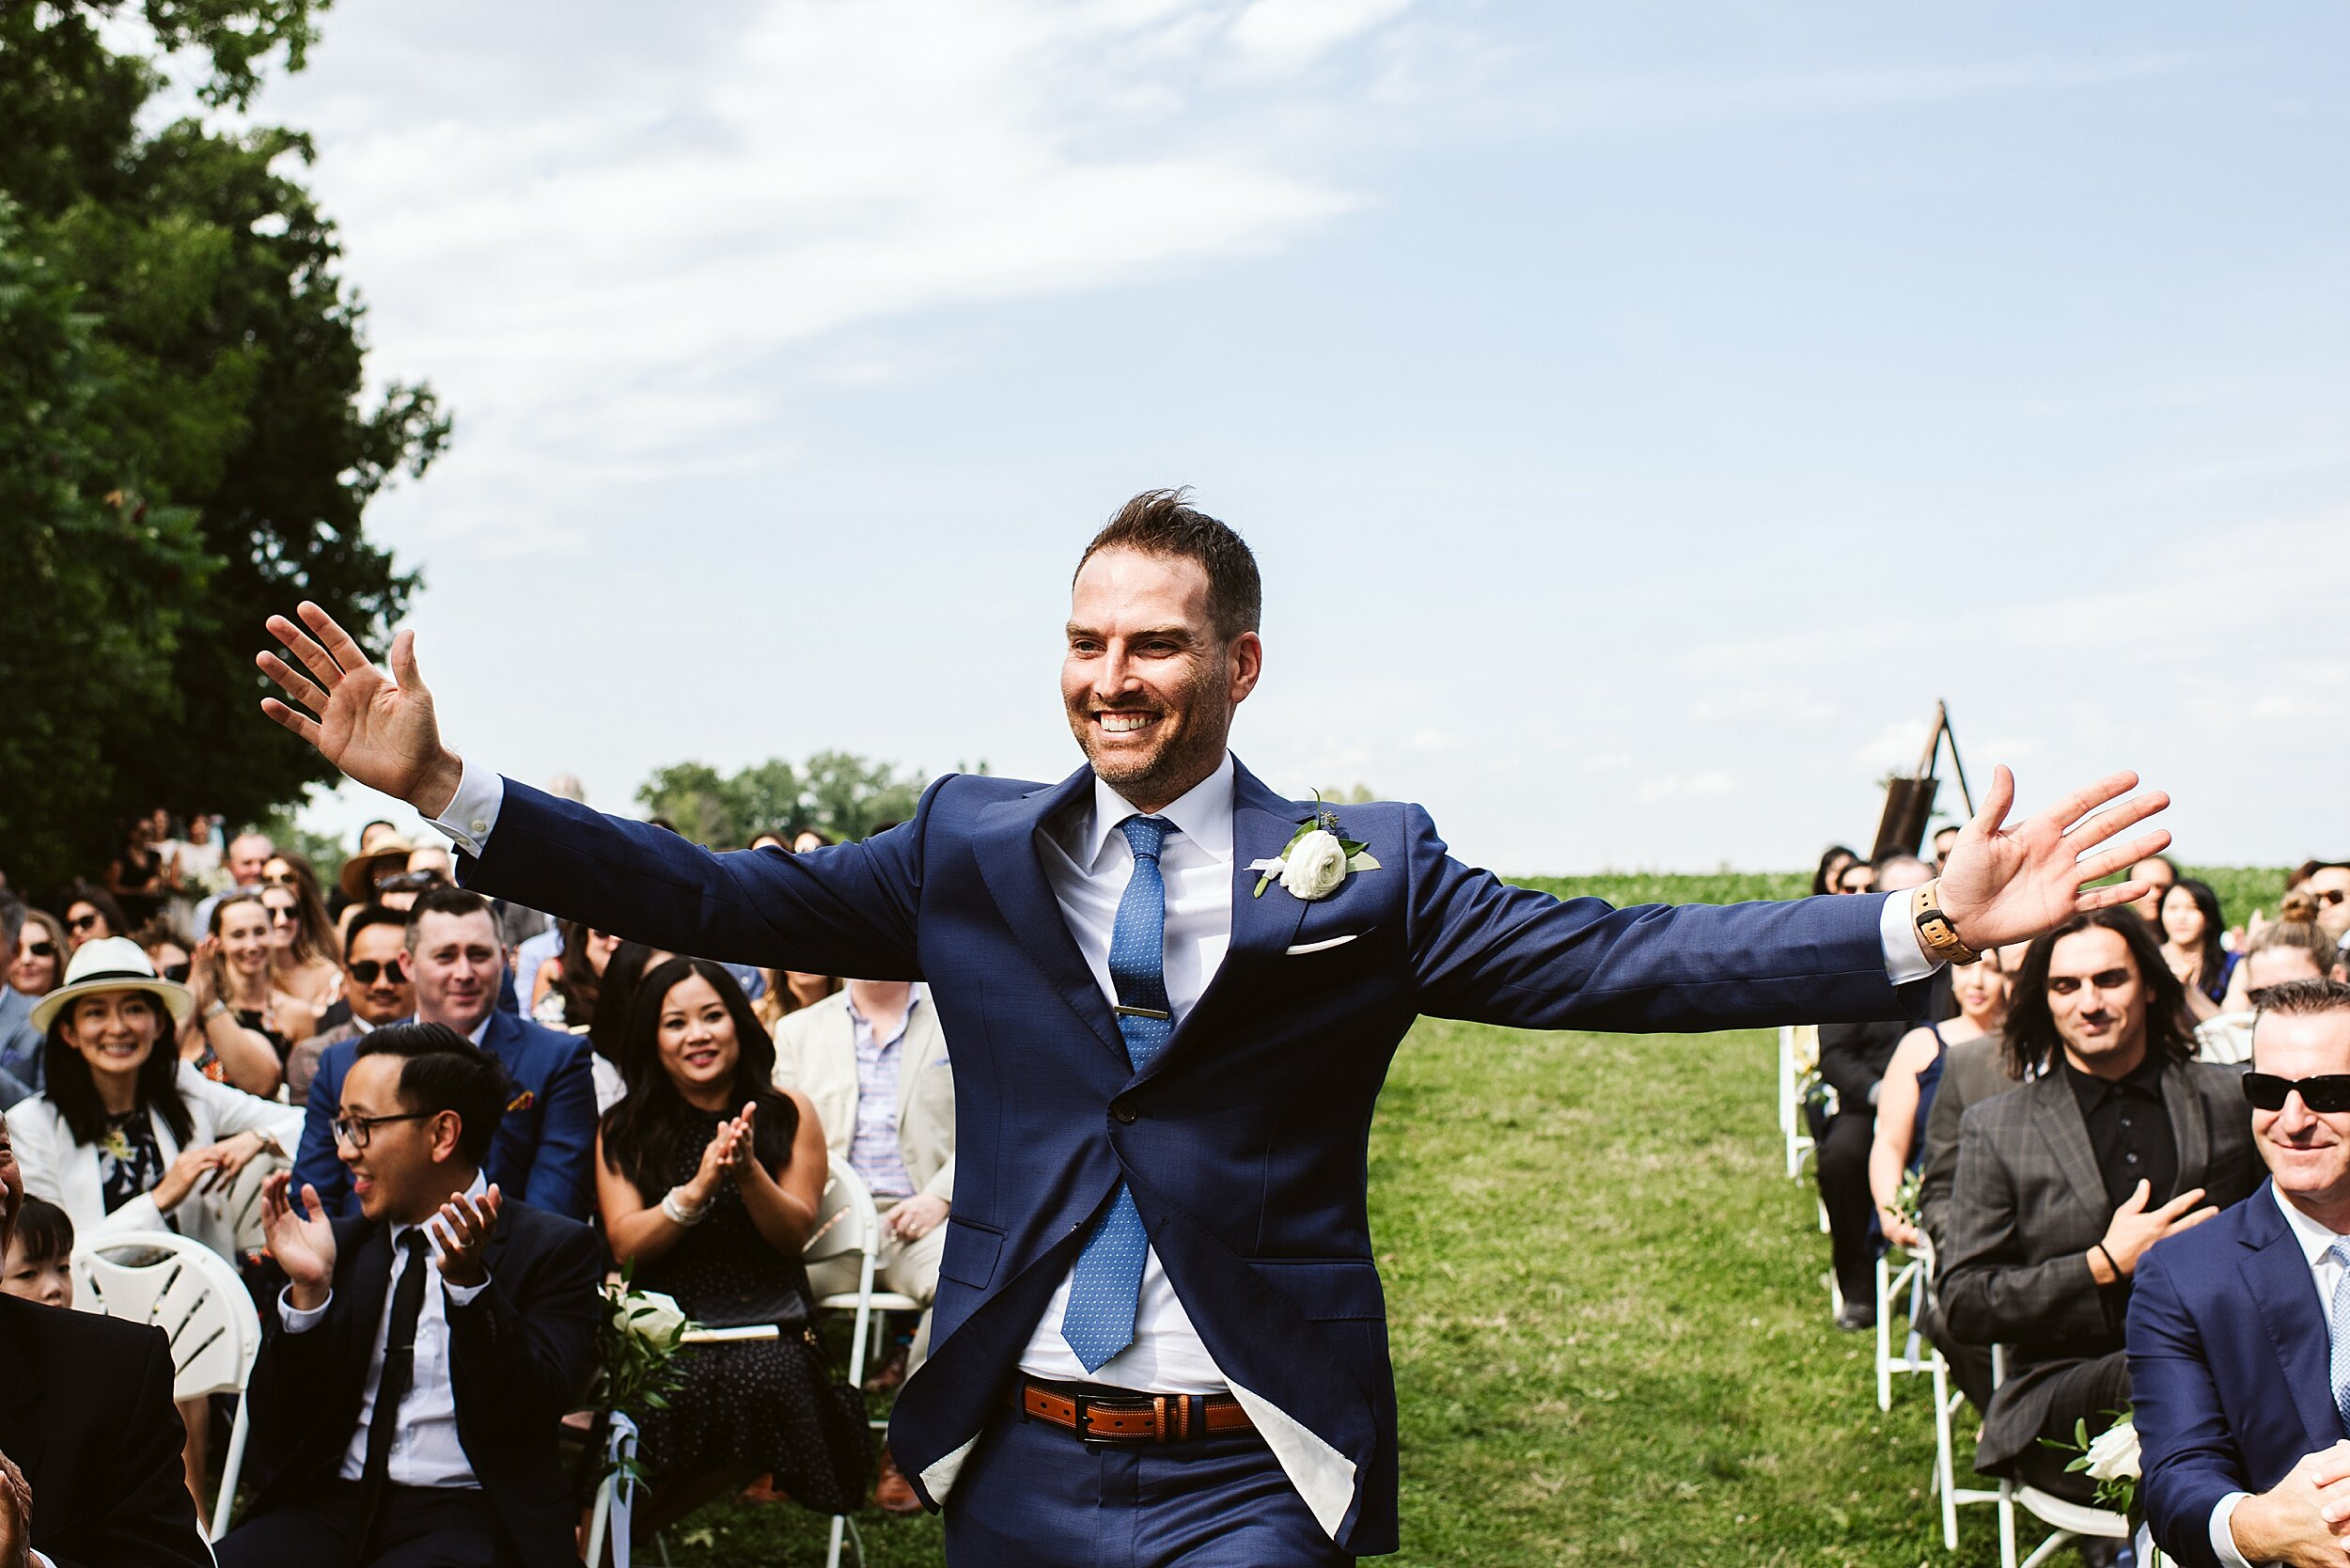 Glen_Drummon_Farm_Wedding_Toronto_Photographers_Fox_Photography_Dyments_0026.jpg